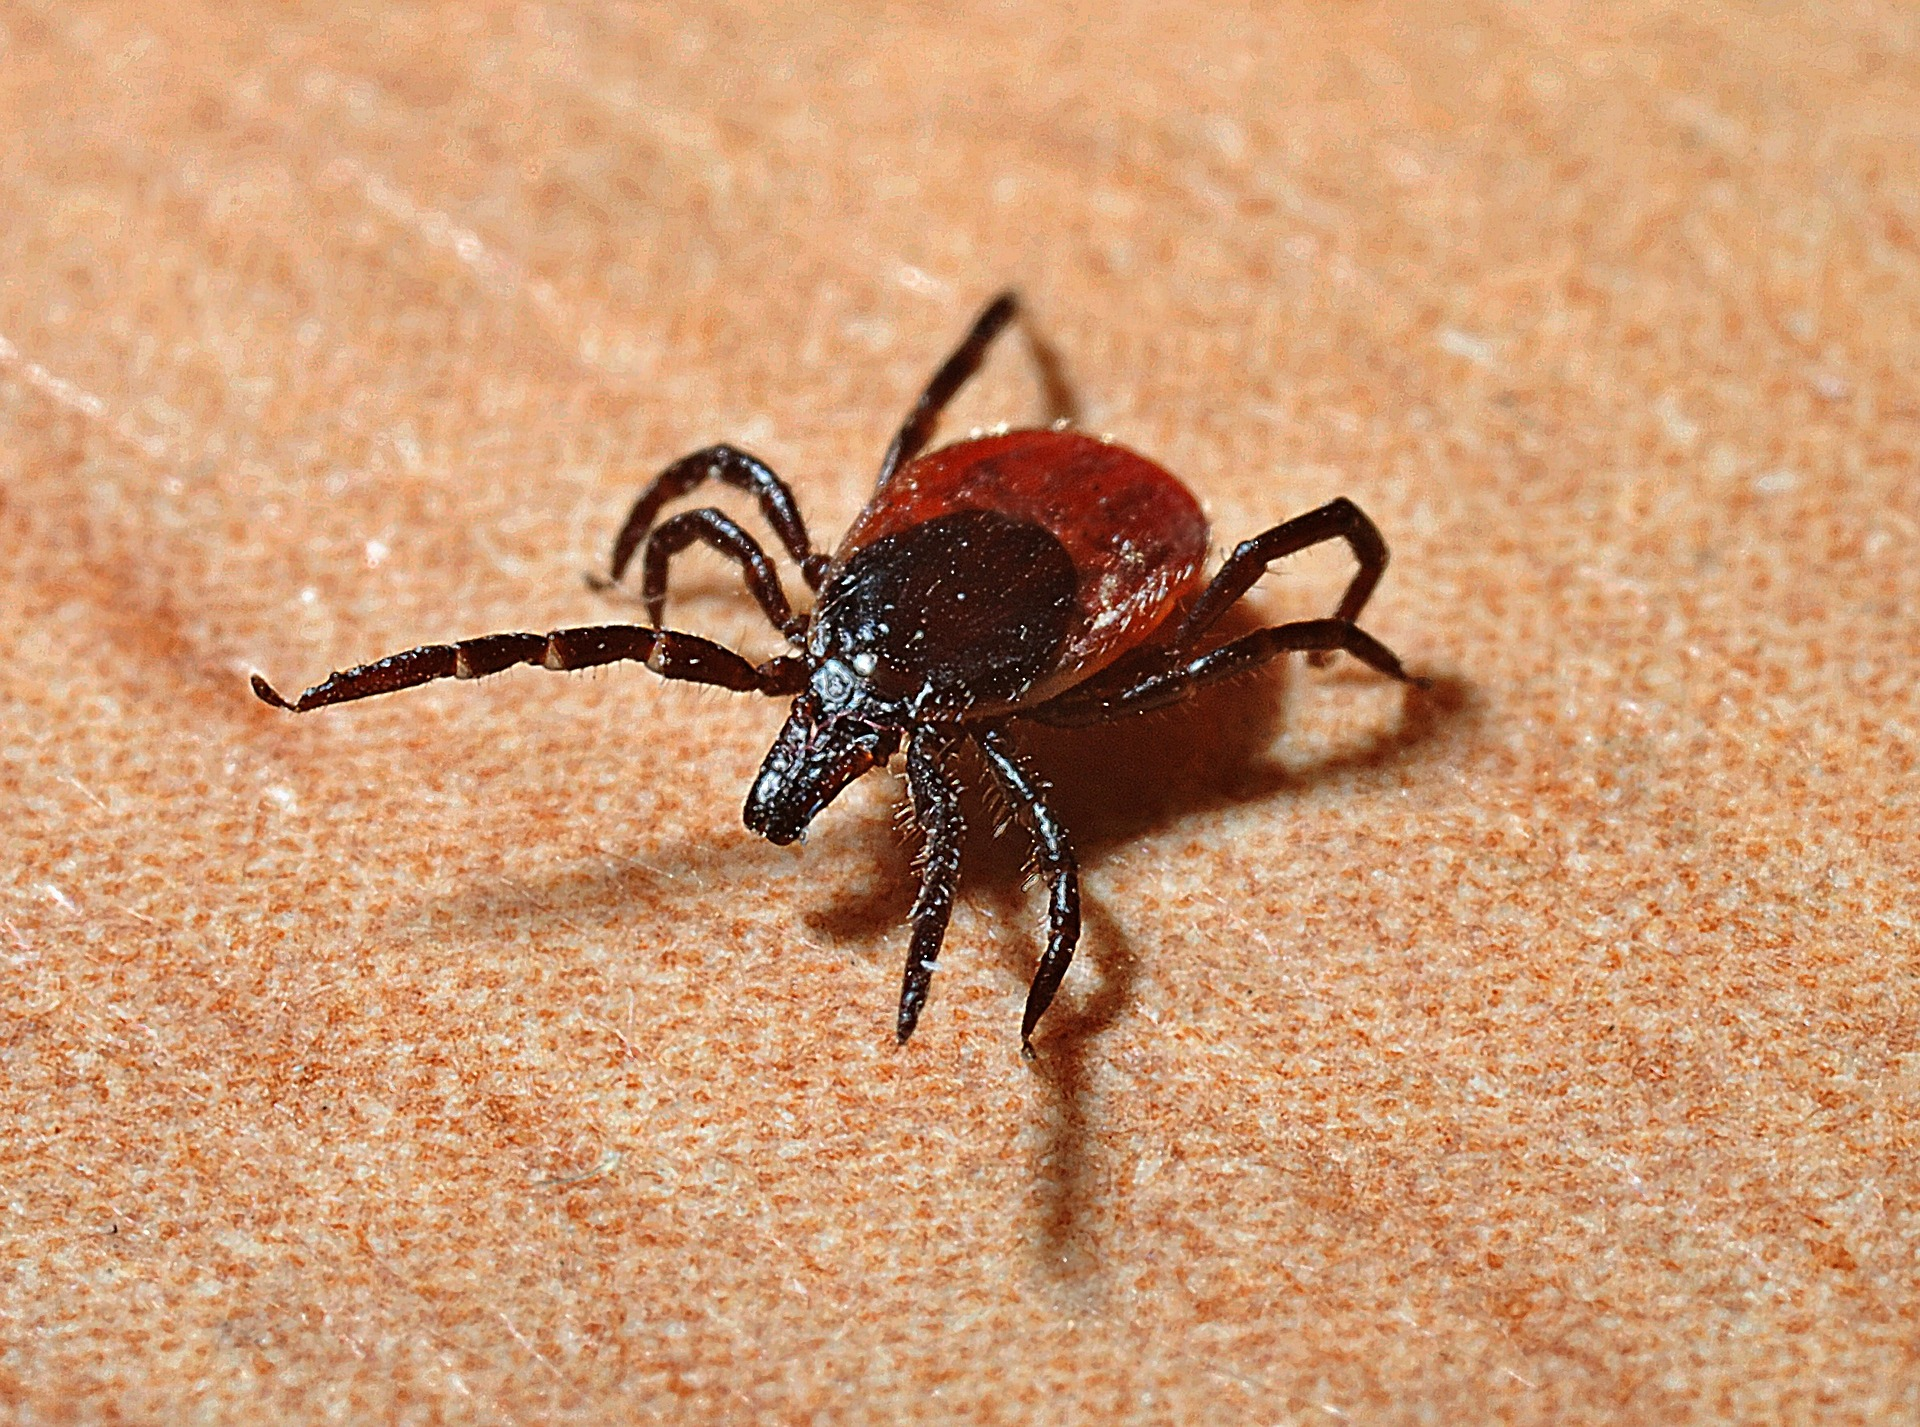 Protecting your pets from Ticks